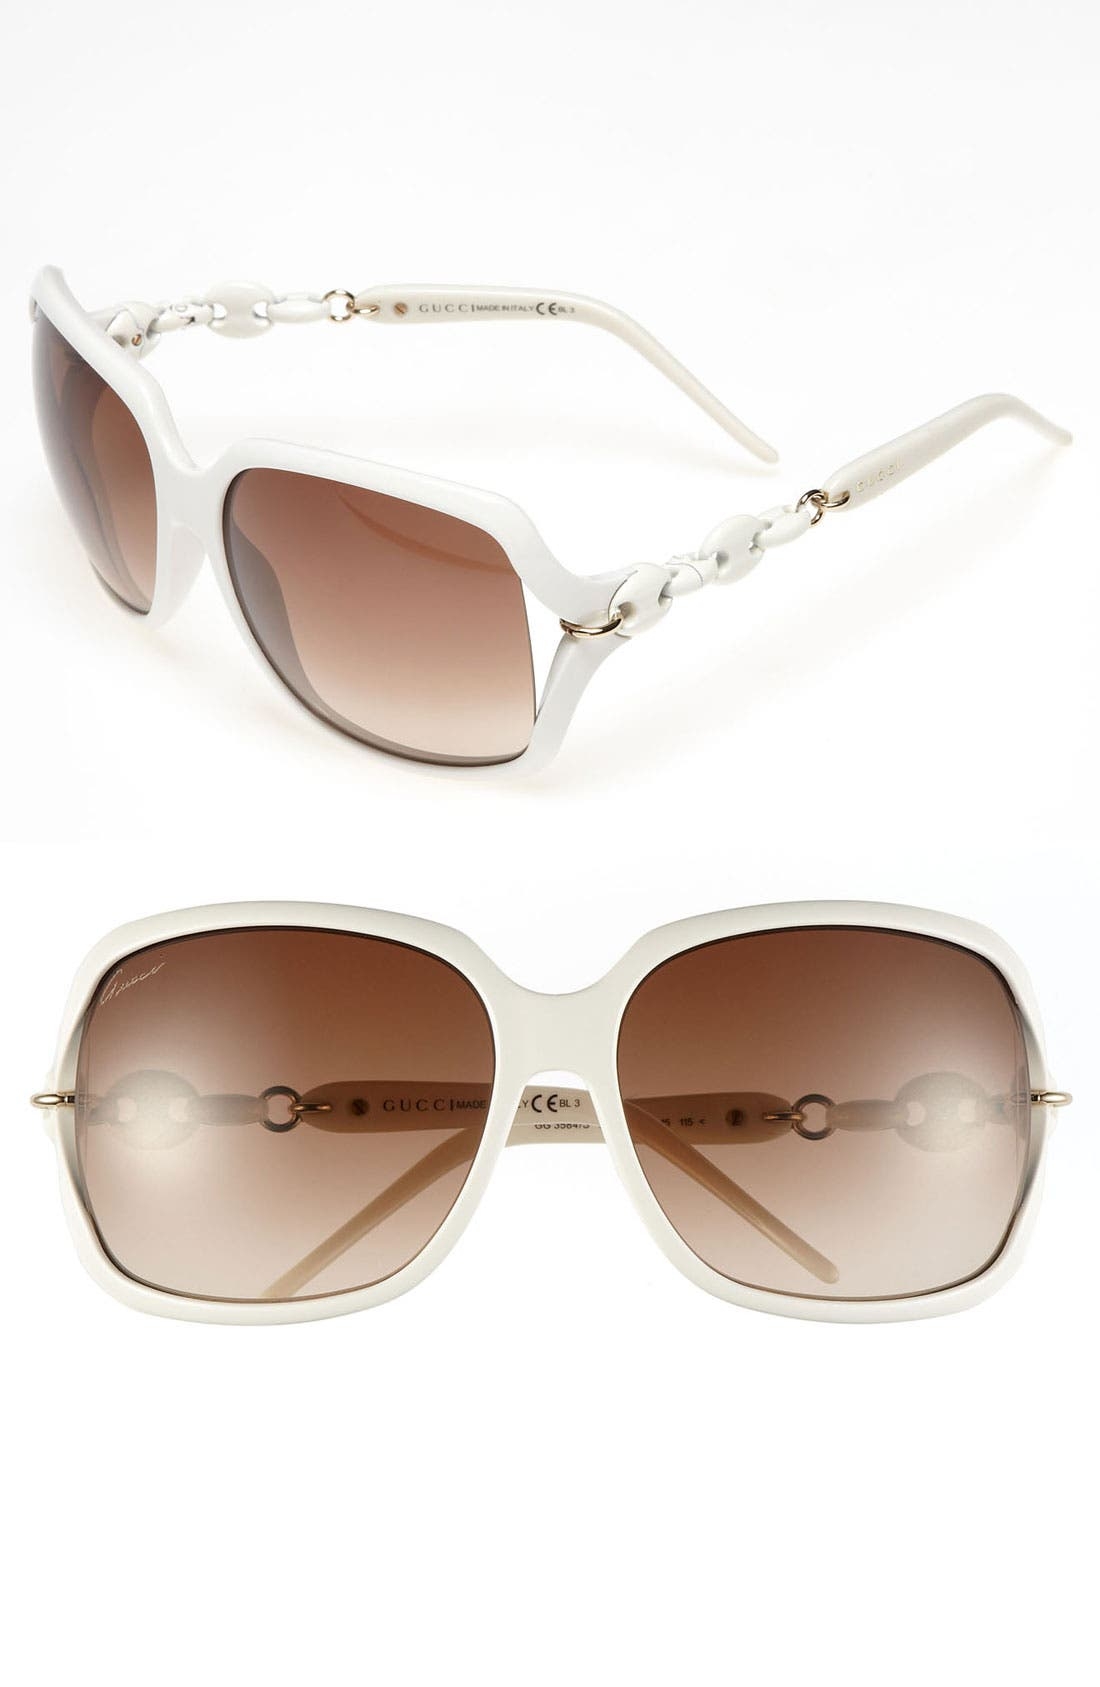 Alternate Image 1 Selected - Gucci 'Marina Chain' 59mm Oversized Sunglasses